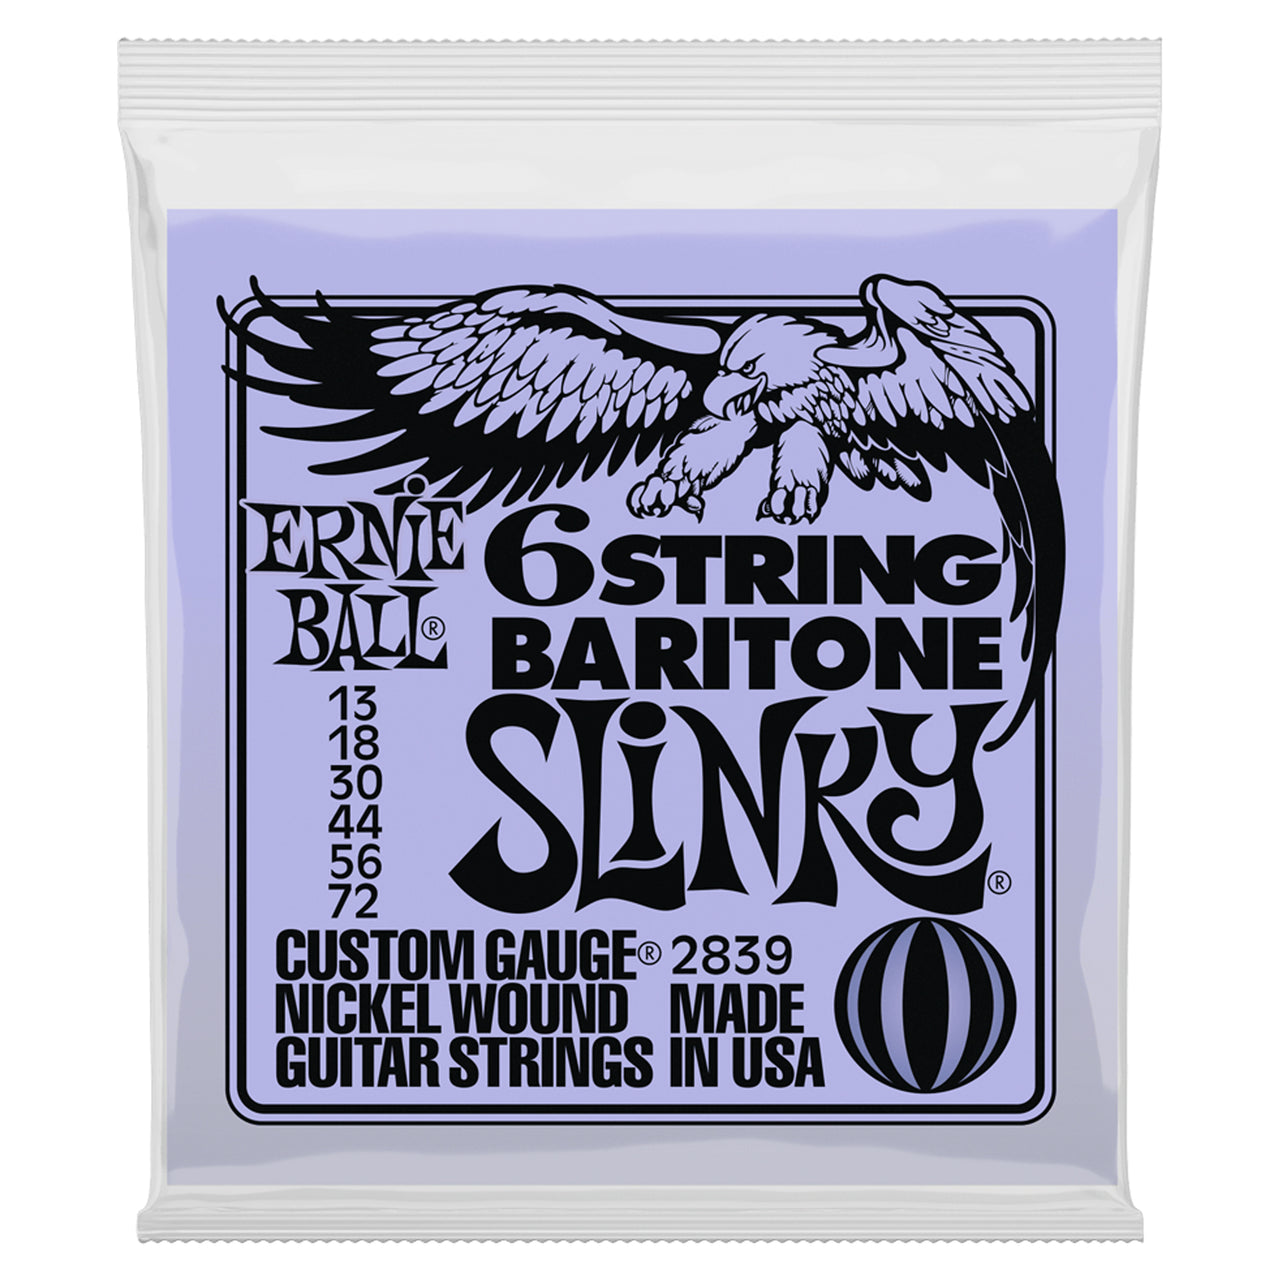 Ernie Ball 6 String Baritone Slinky Electric Guitar Strings